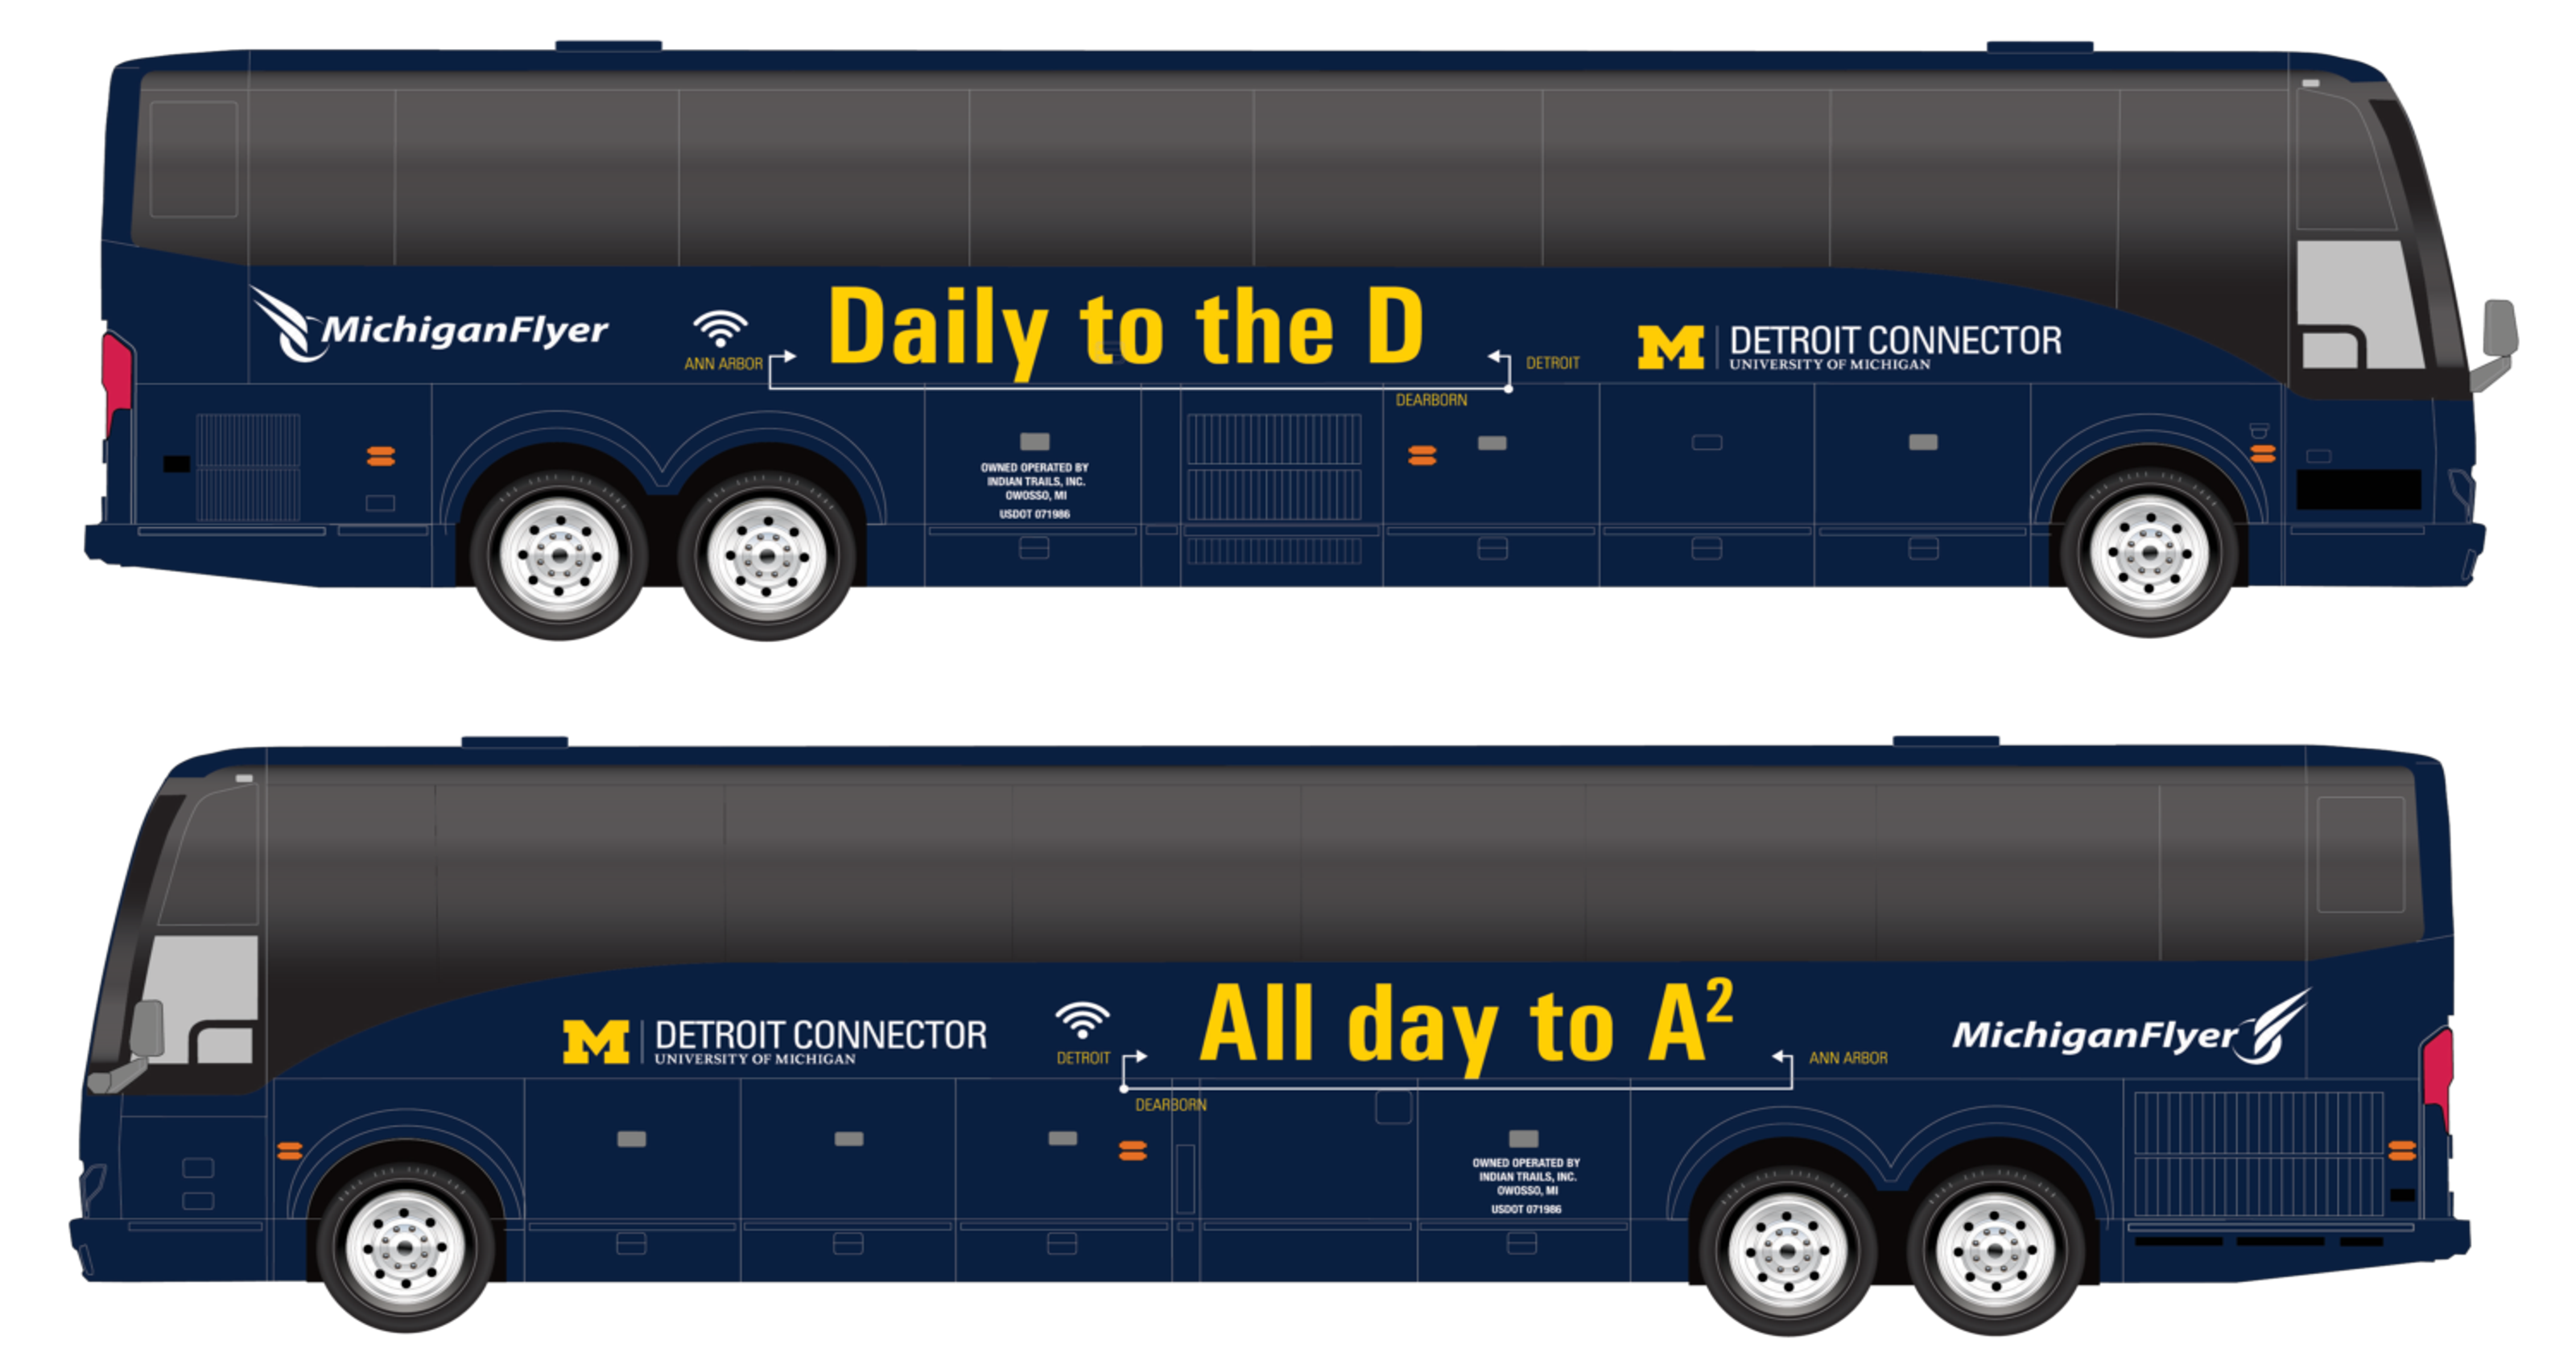 Detroit Connector to offer daily bus service to Ann Arbor